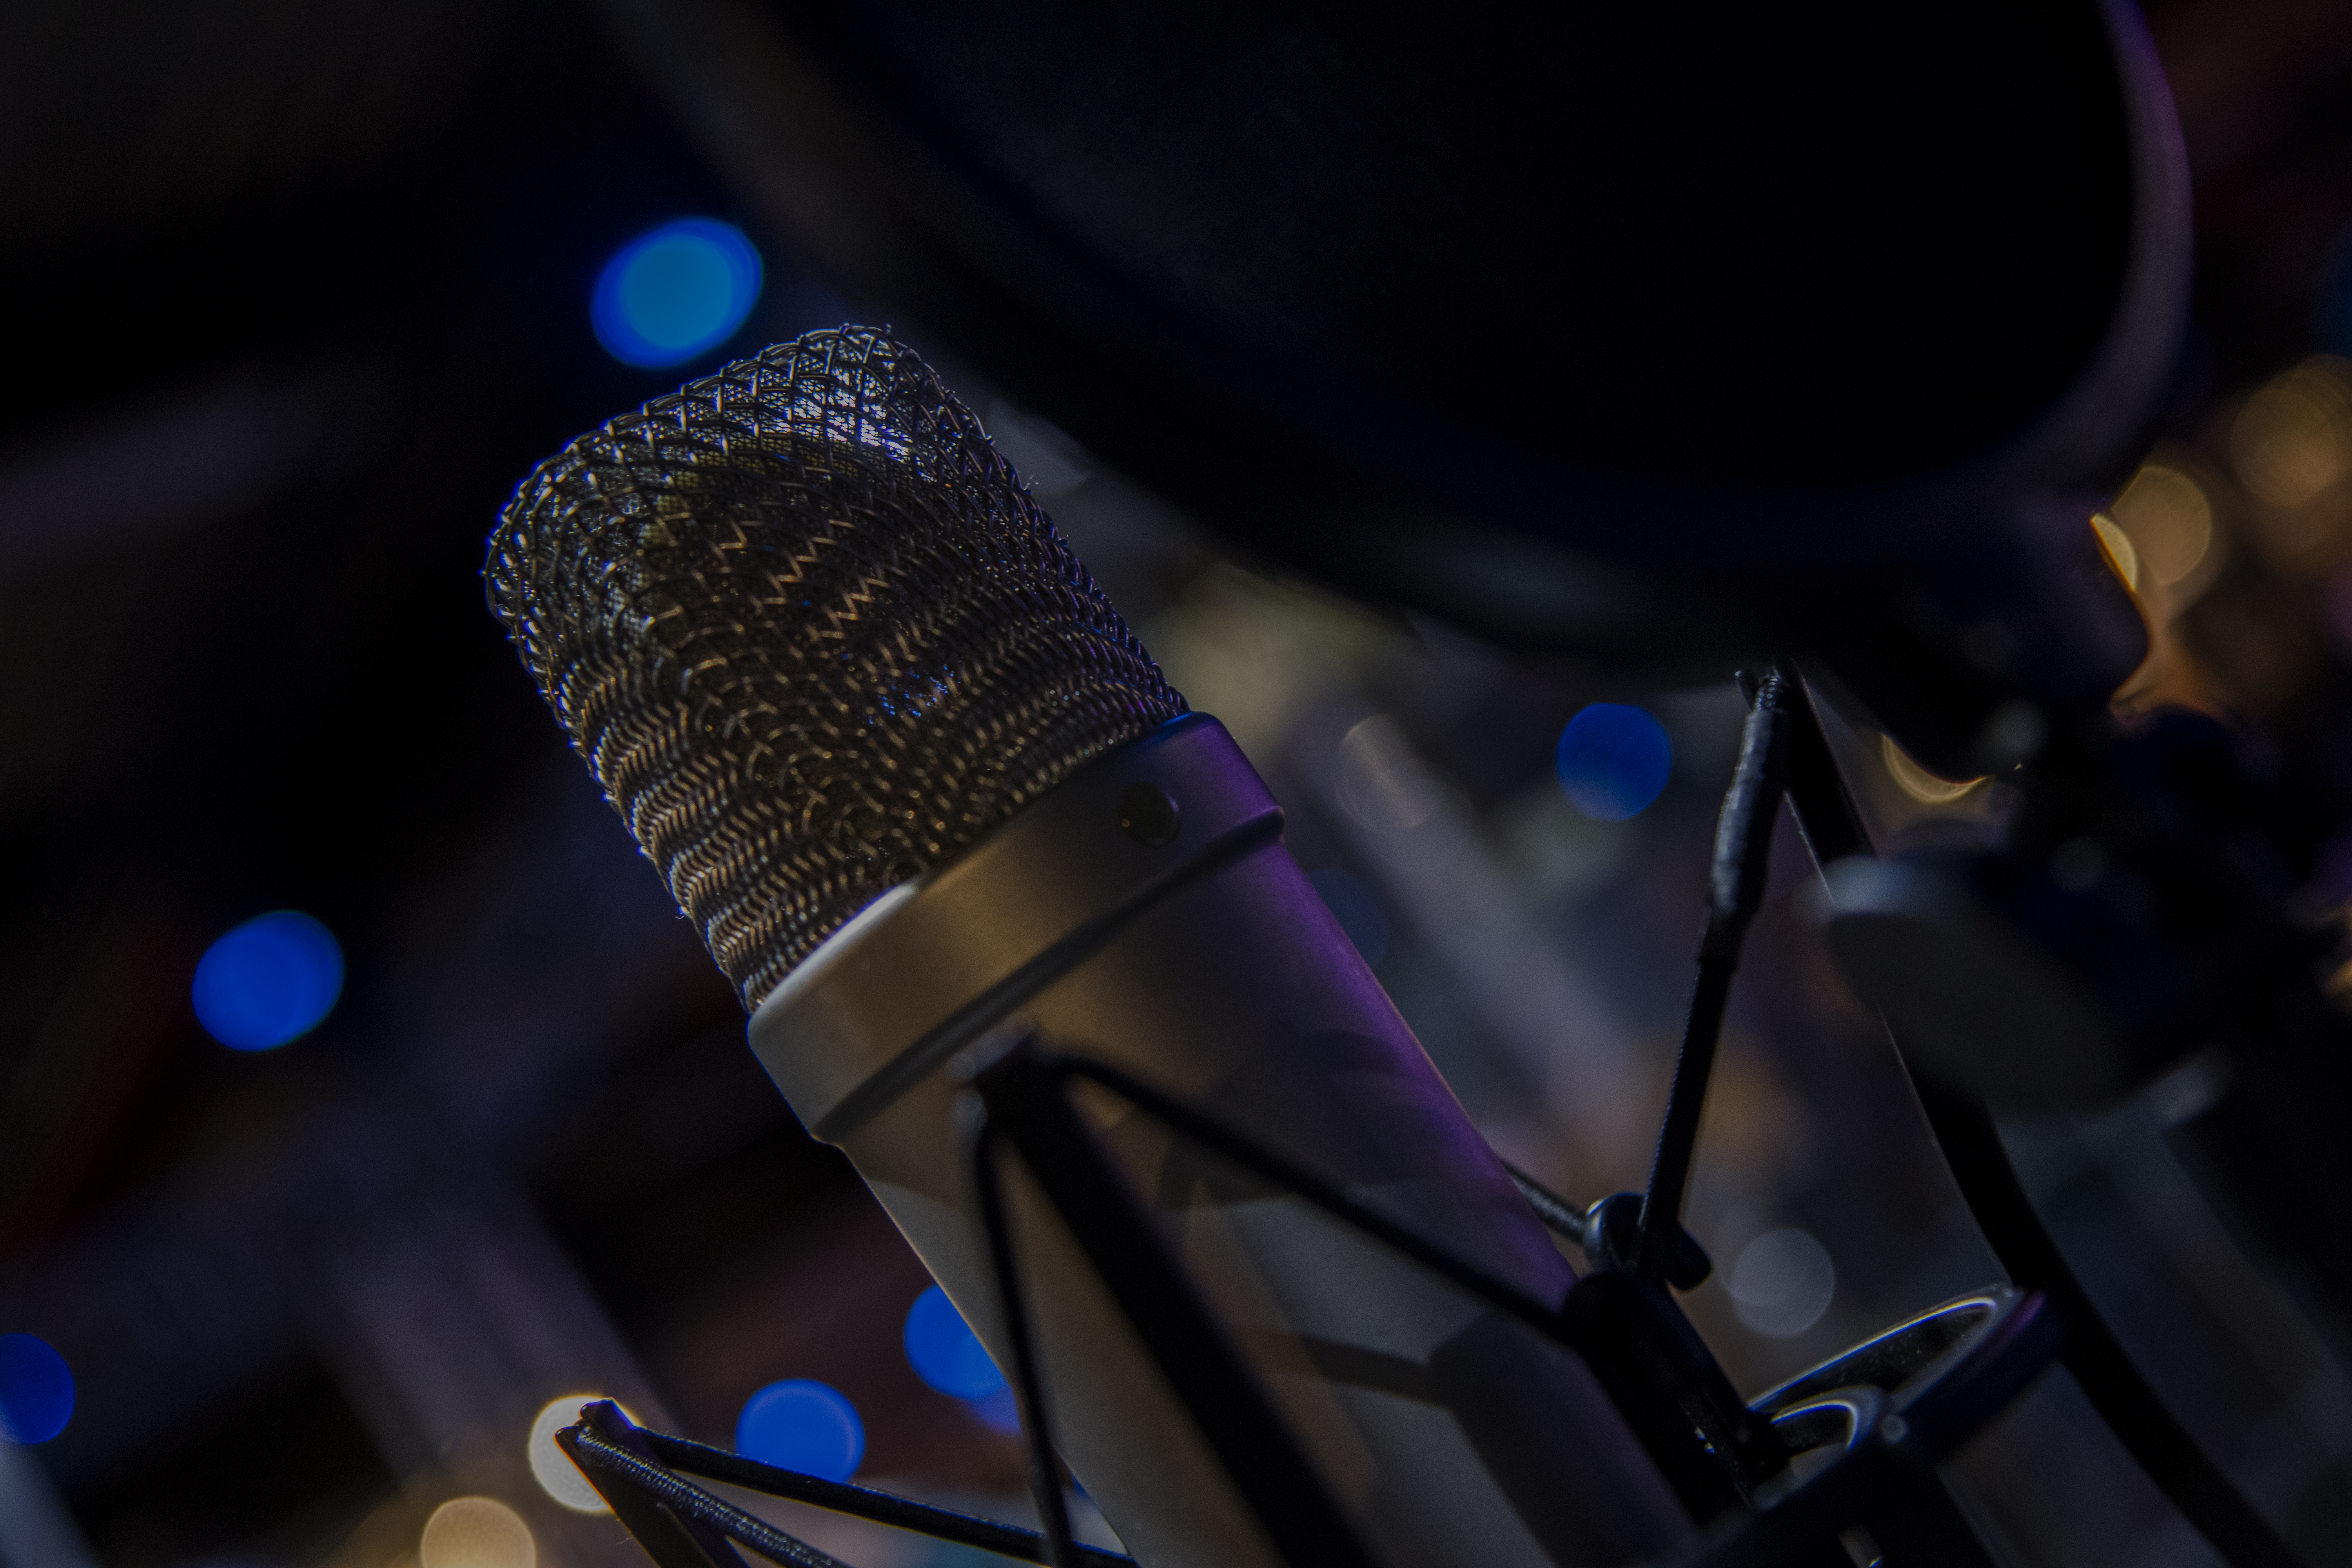 The Røde microphone